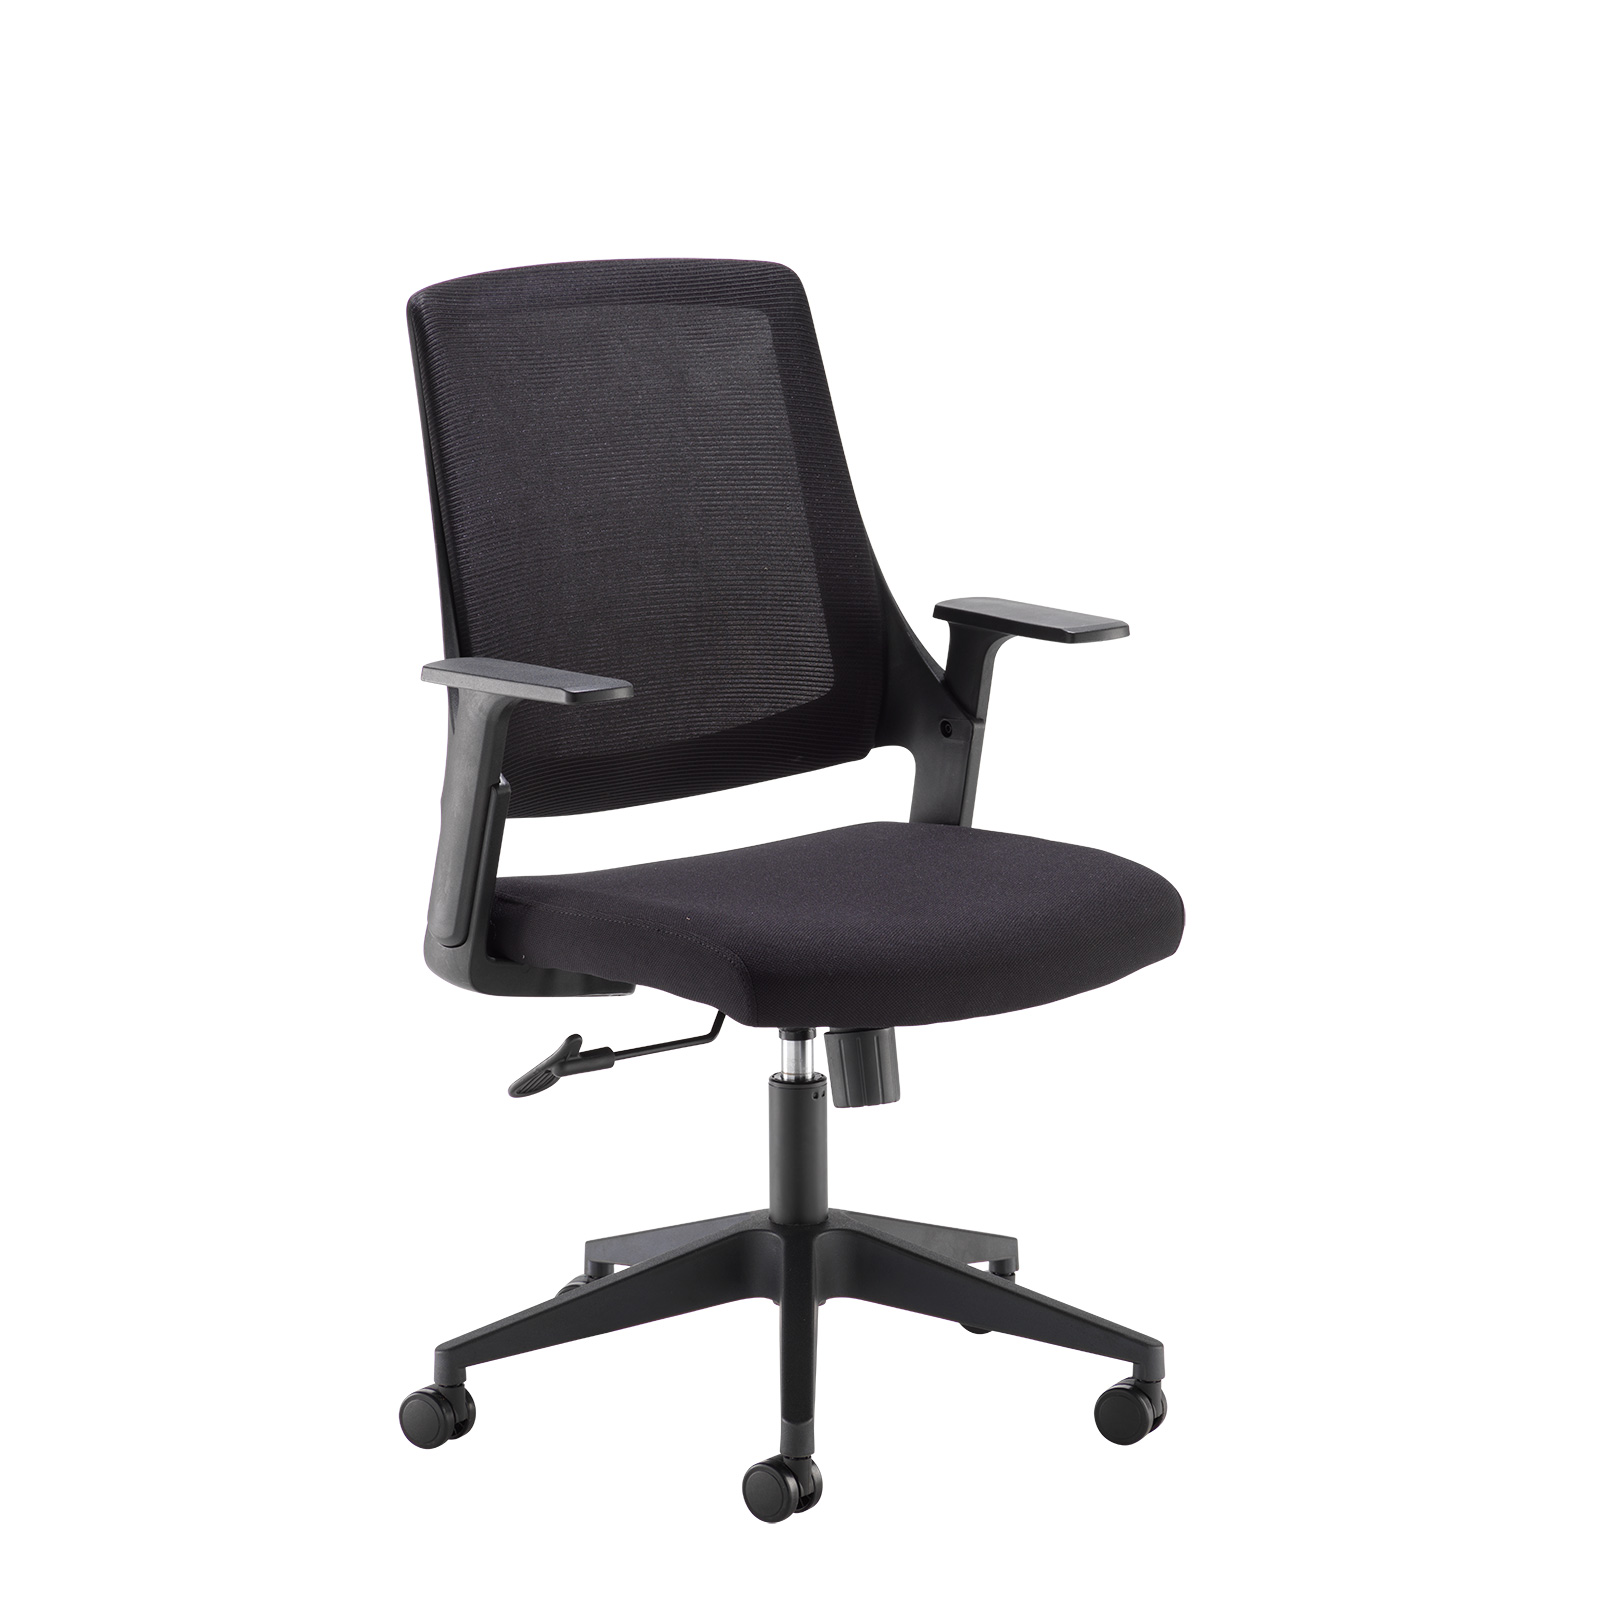 Desk Chairs Duffy black mesh back operator chair with black fabric seat and chrome/black base